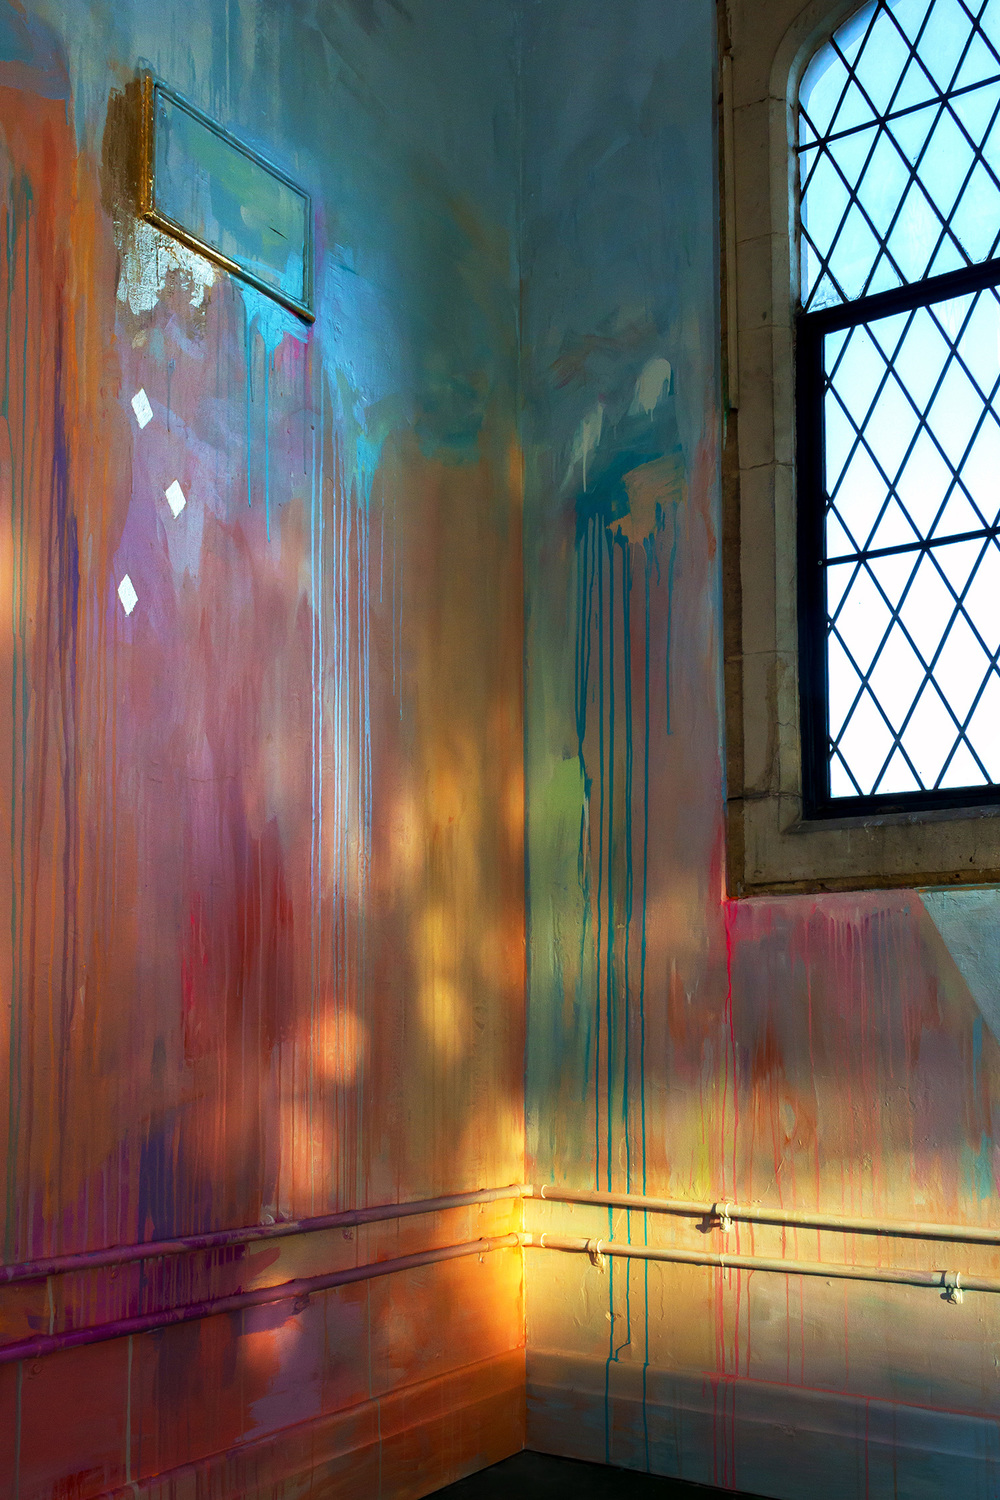 Large scale abstract mural with rainbow stripes in warehouse like tower, features gold leaf metallic birds flying out of the window, round arch windows, pillars and concrete floor, reflections of light looks like fire and fairy lights.